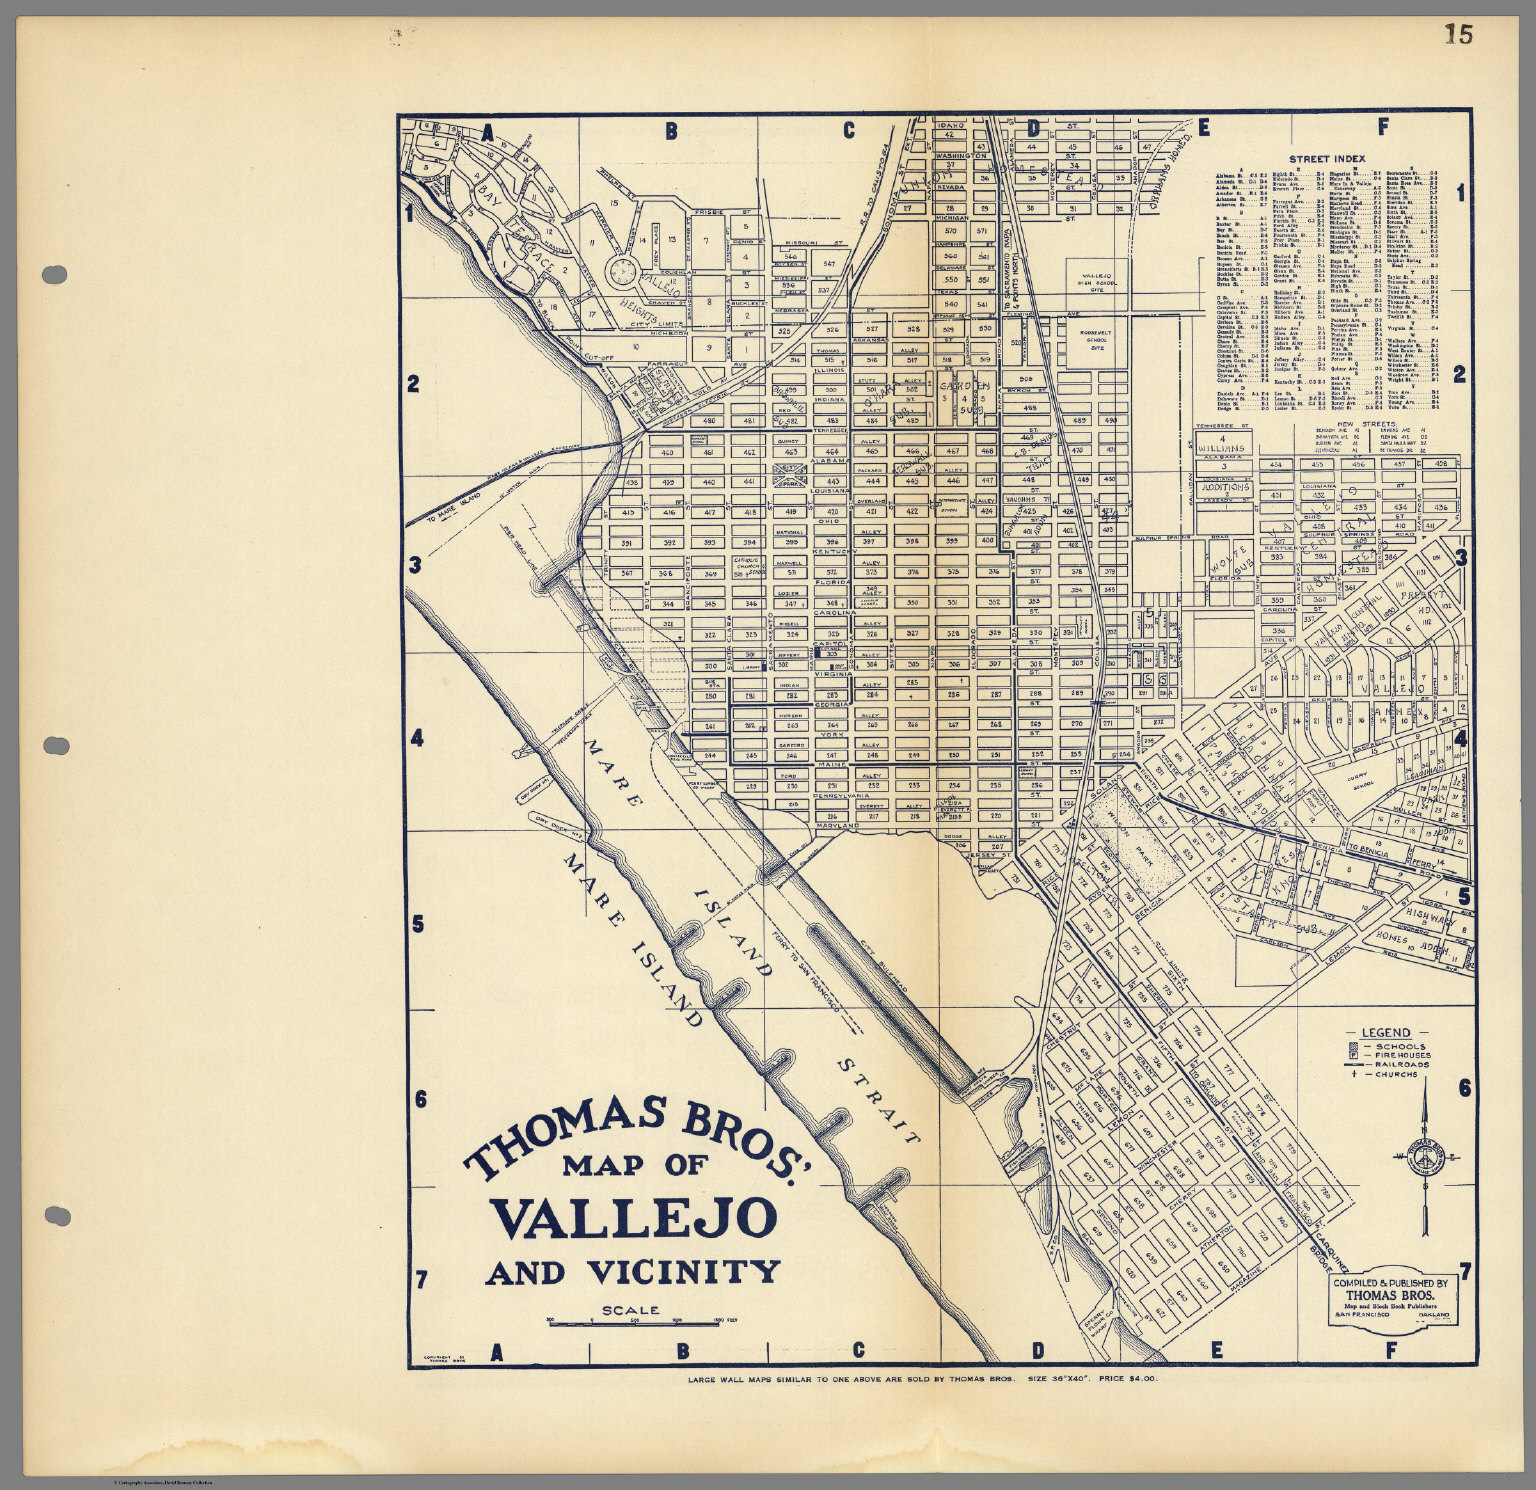 Thomas Bros Map of Vallejo and Vicinity California David